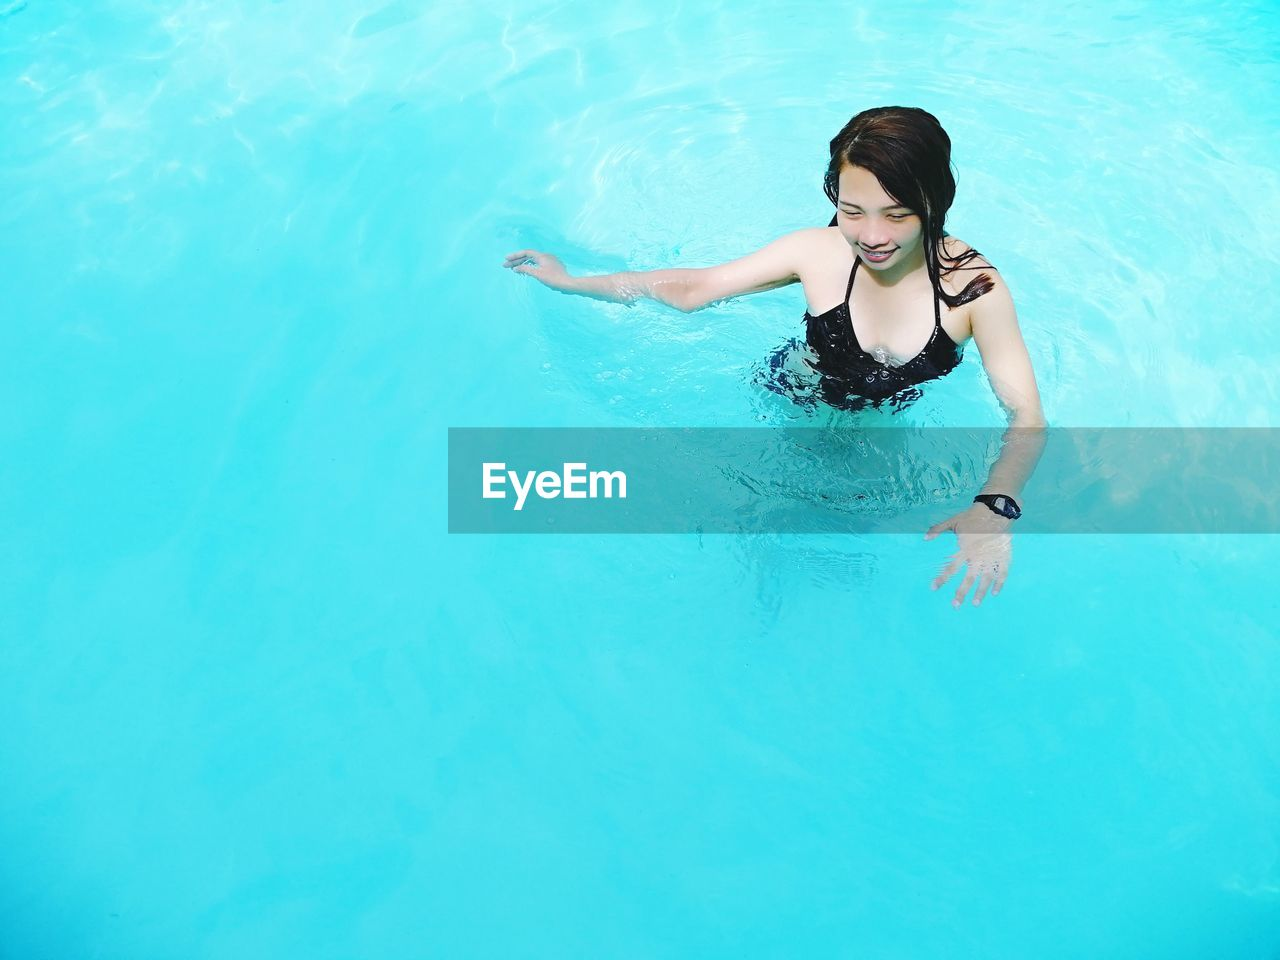 High Angle View Of Smiling Woman Swimming In Pool